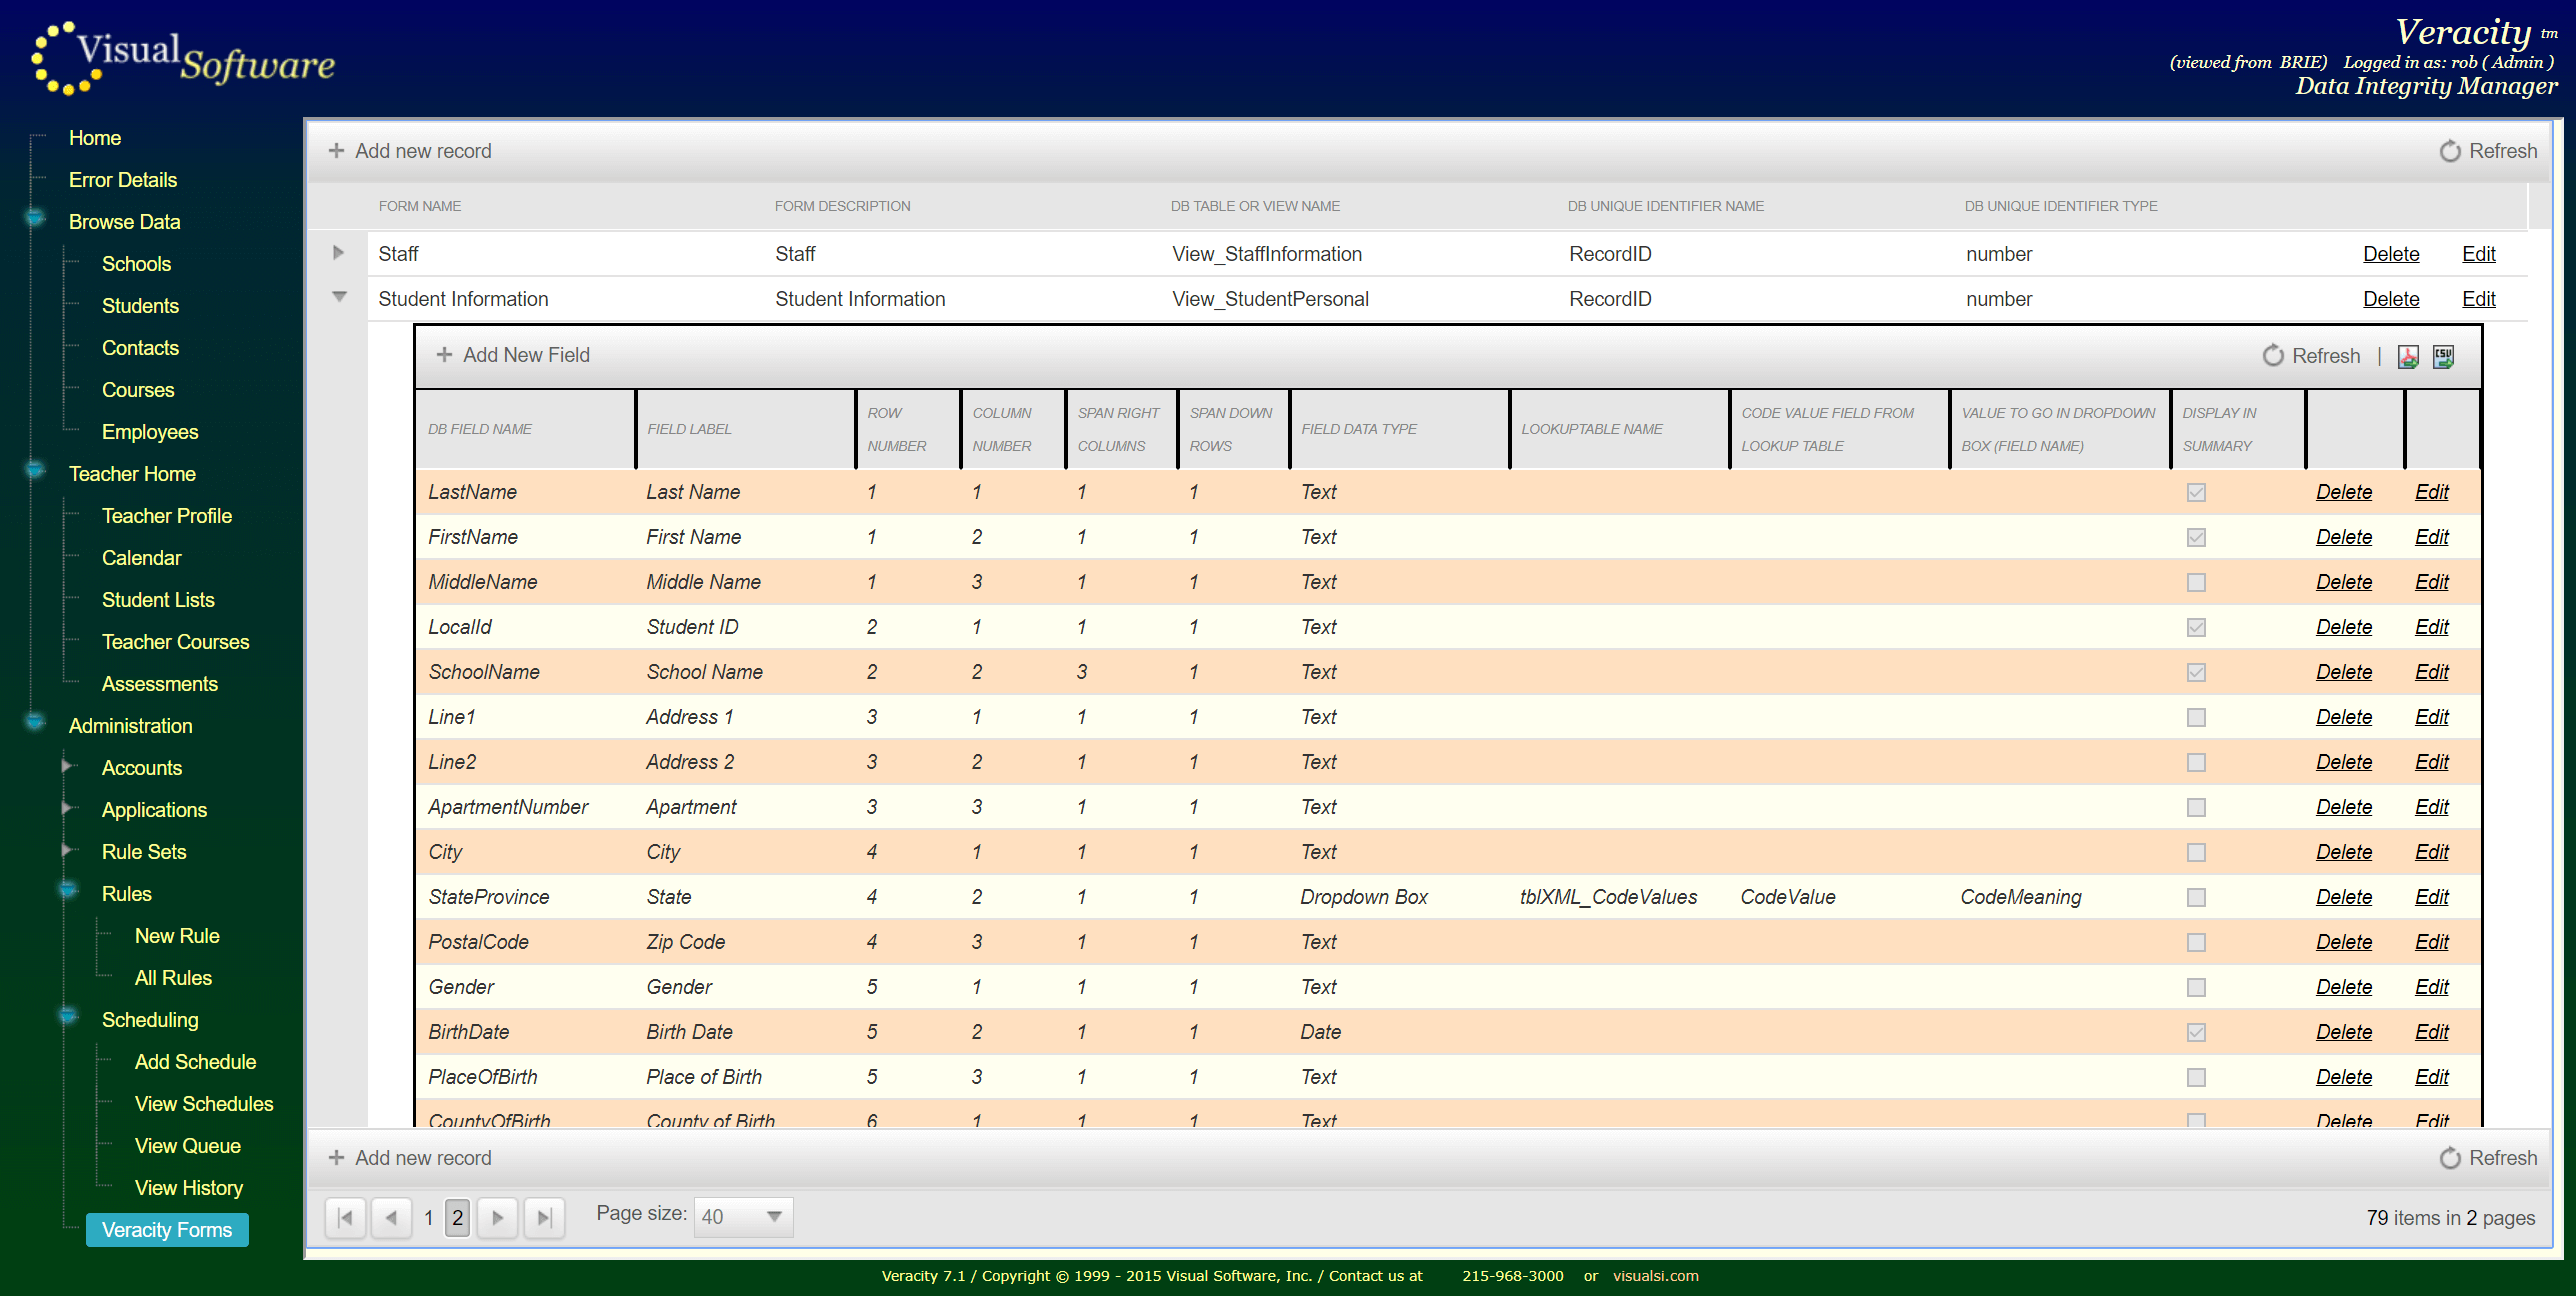 VeracityForms01 - Veracity - Consolidation Agent and Integrity Manager